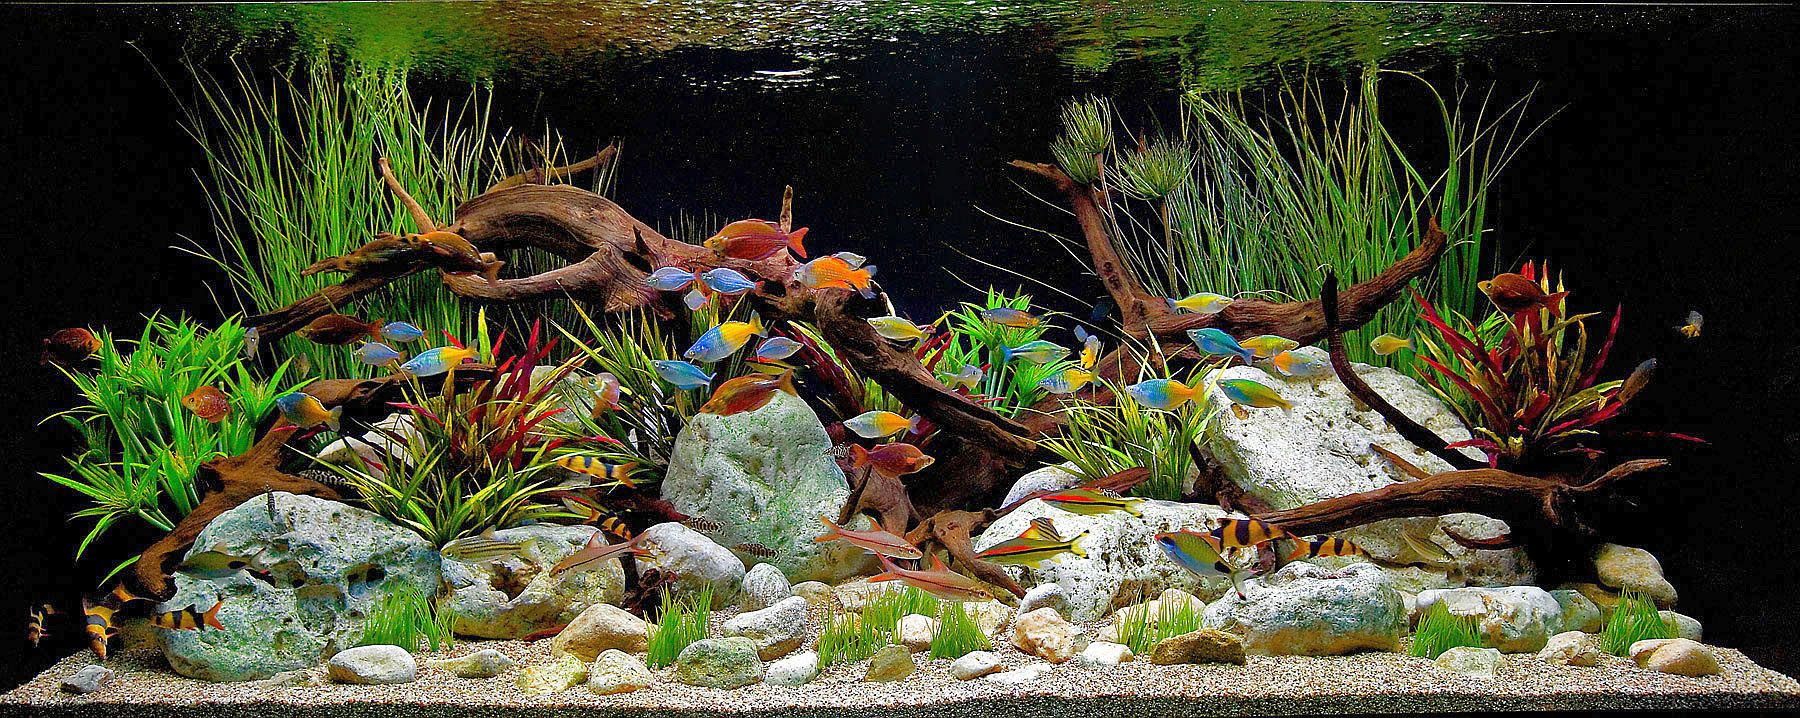 Freshwater Tropical Aquarium Fish